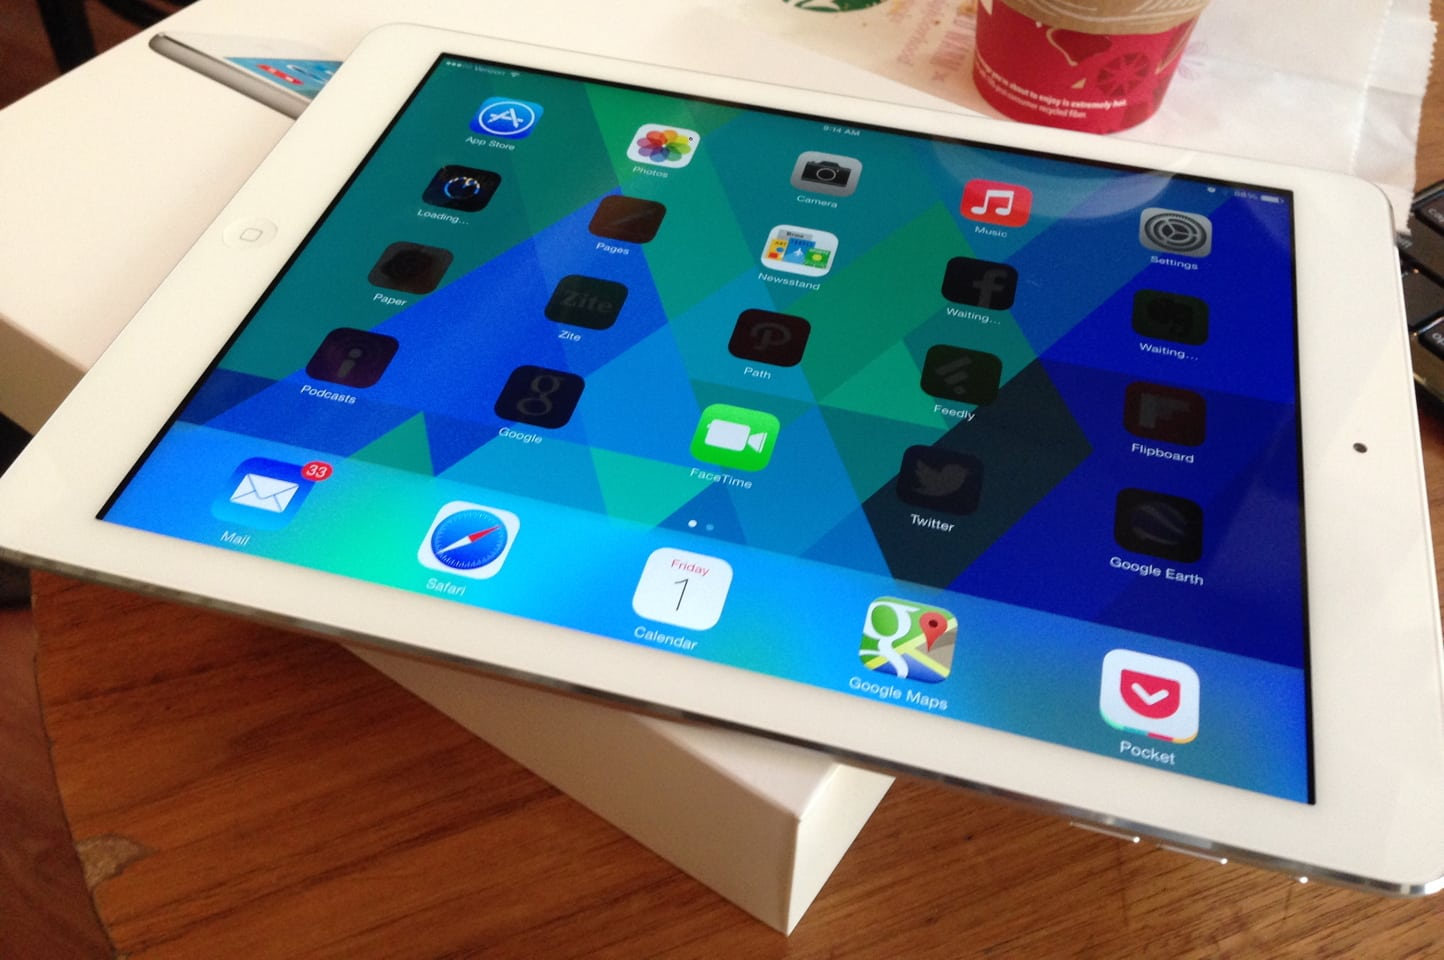 Unboxing the iPad Air